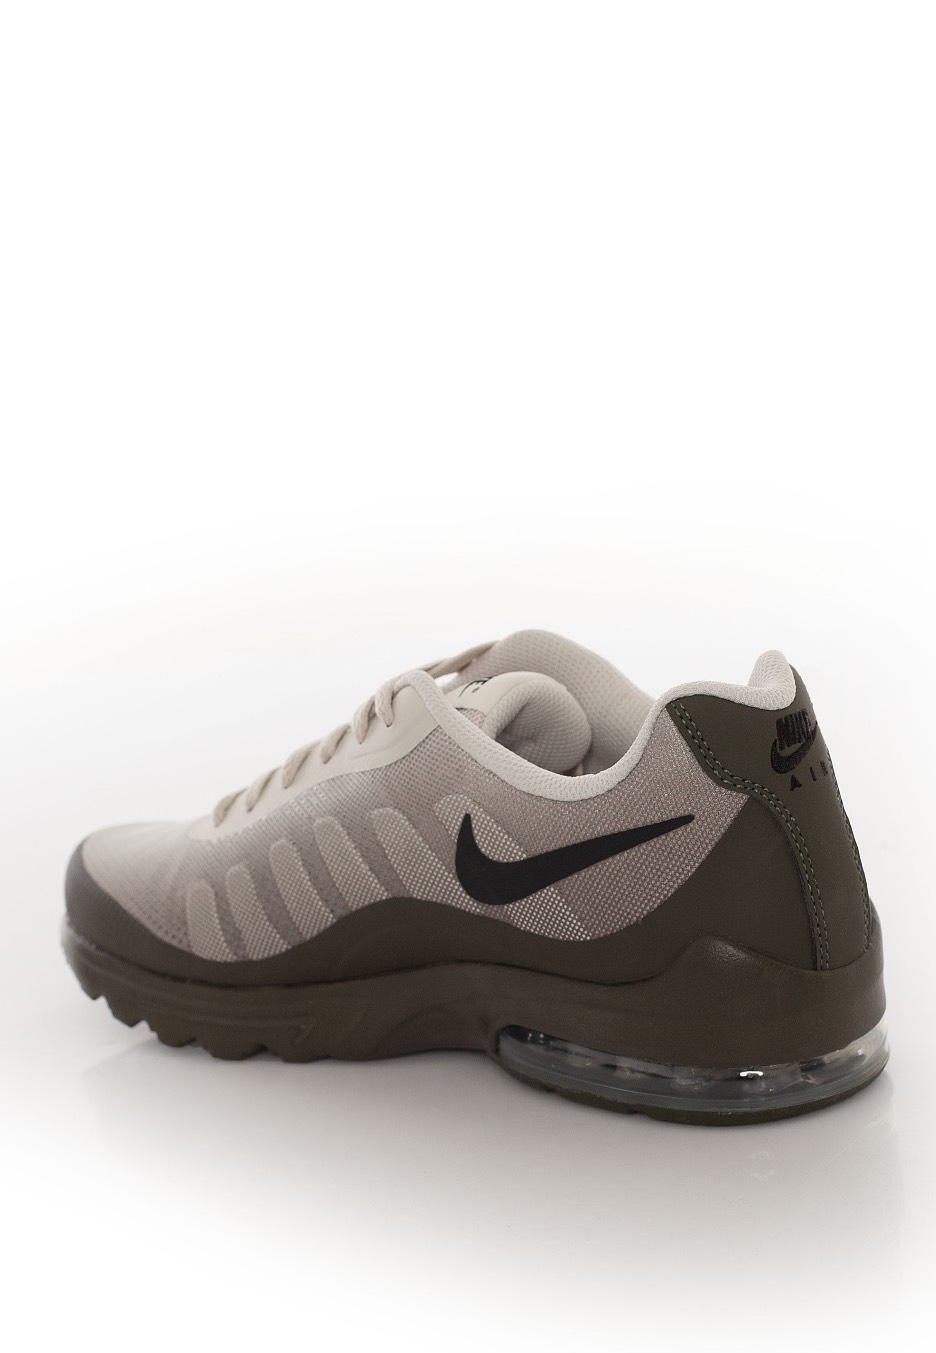 4d3553759a9a2 ... Nike - Air Max Invigor Print Light Bone Black Cargo Khaki - Shoes ...